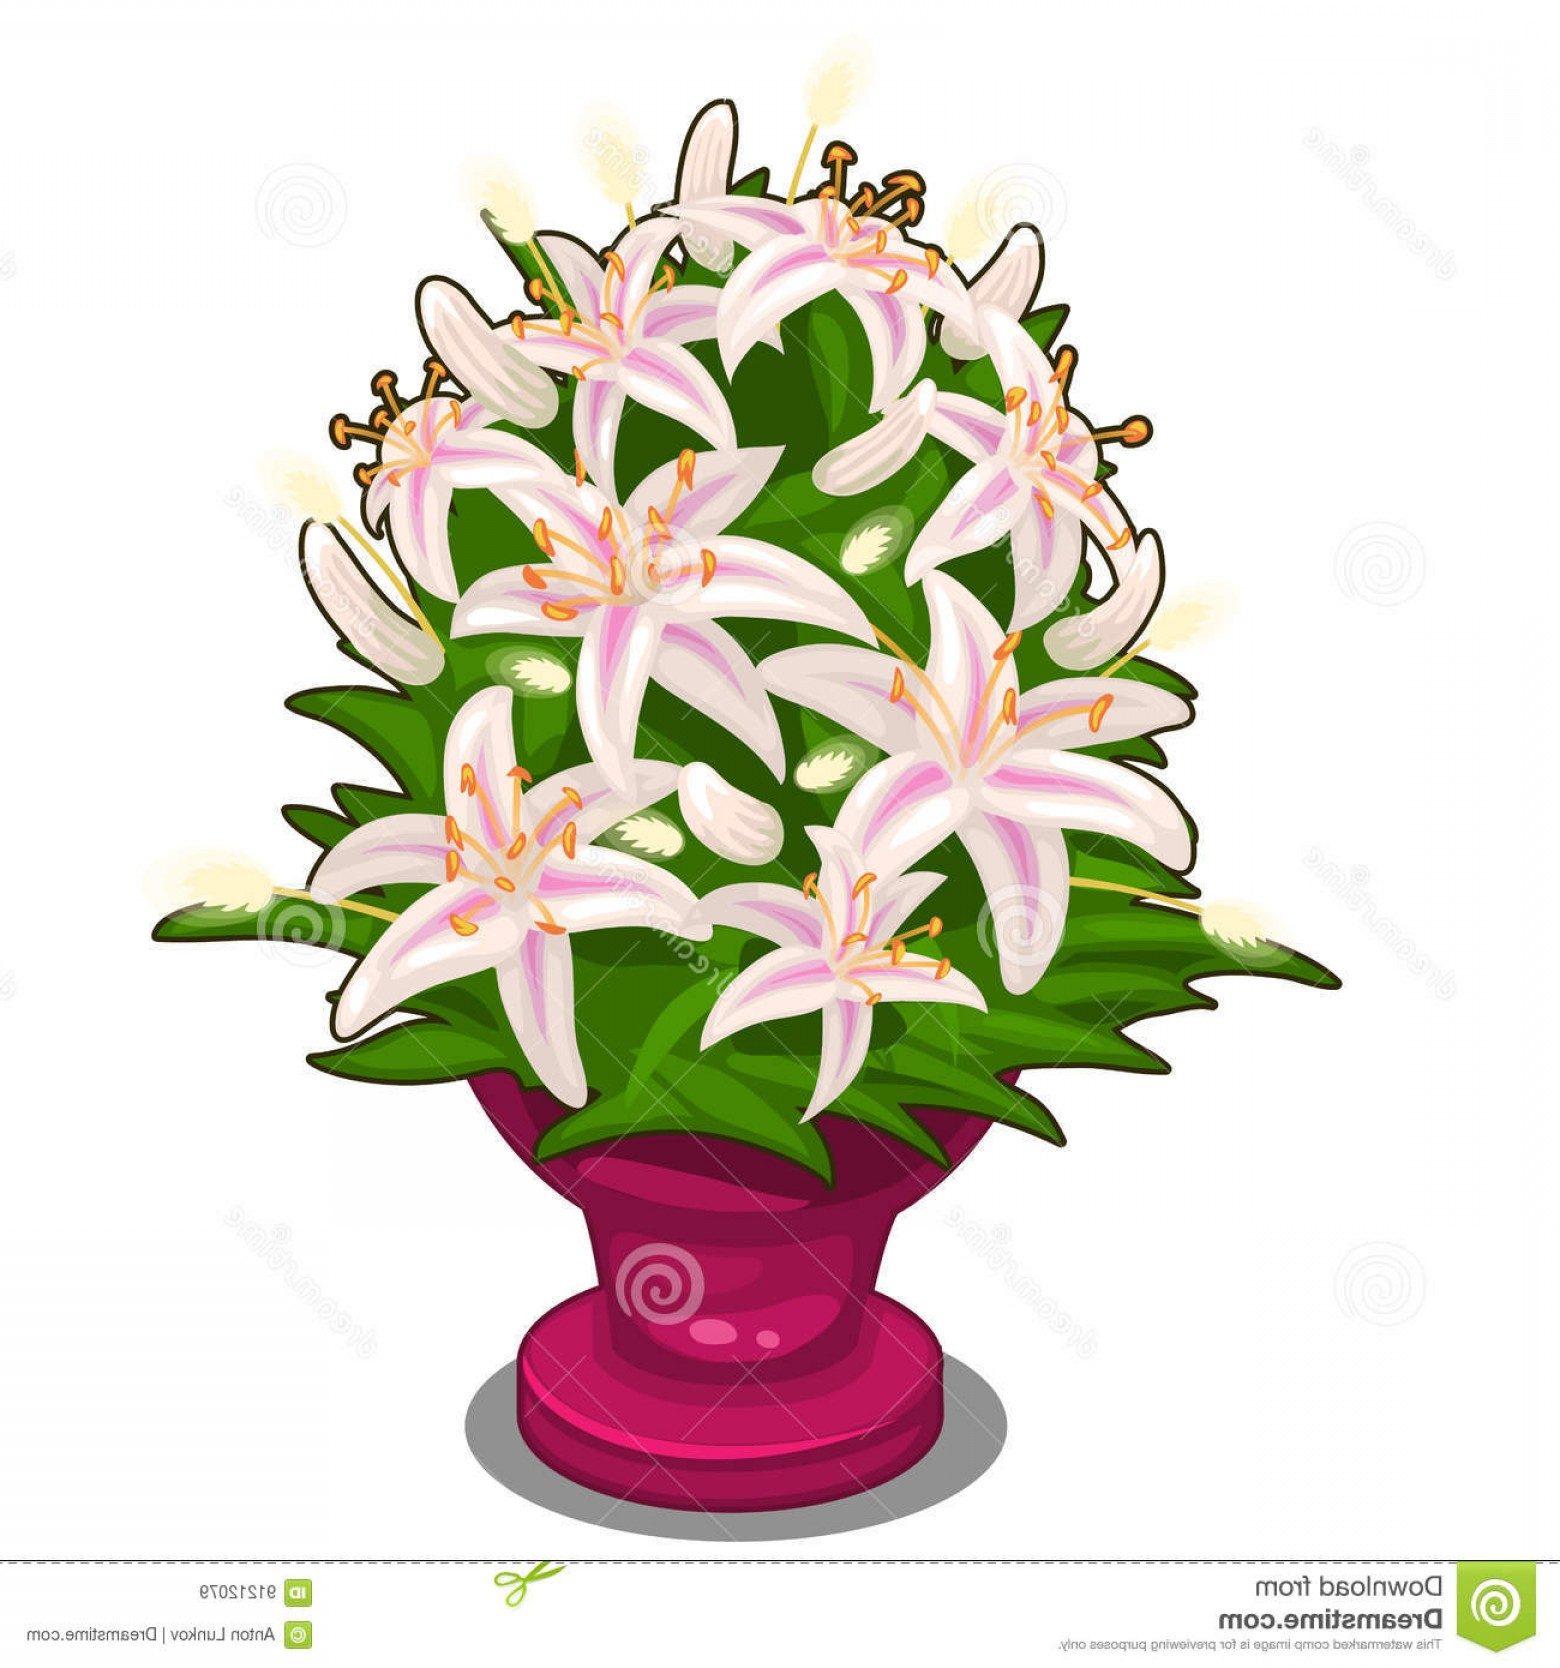 Vector Art Flowers In Vace: Stock Illustration Bouquet Pink Flowers Vase Vector Isolated Illustration Cartoon Style White Background Image Your Design Needs Image